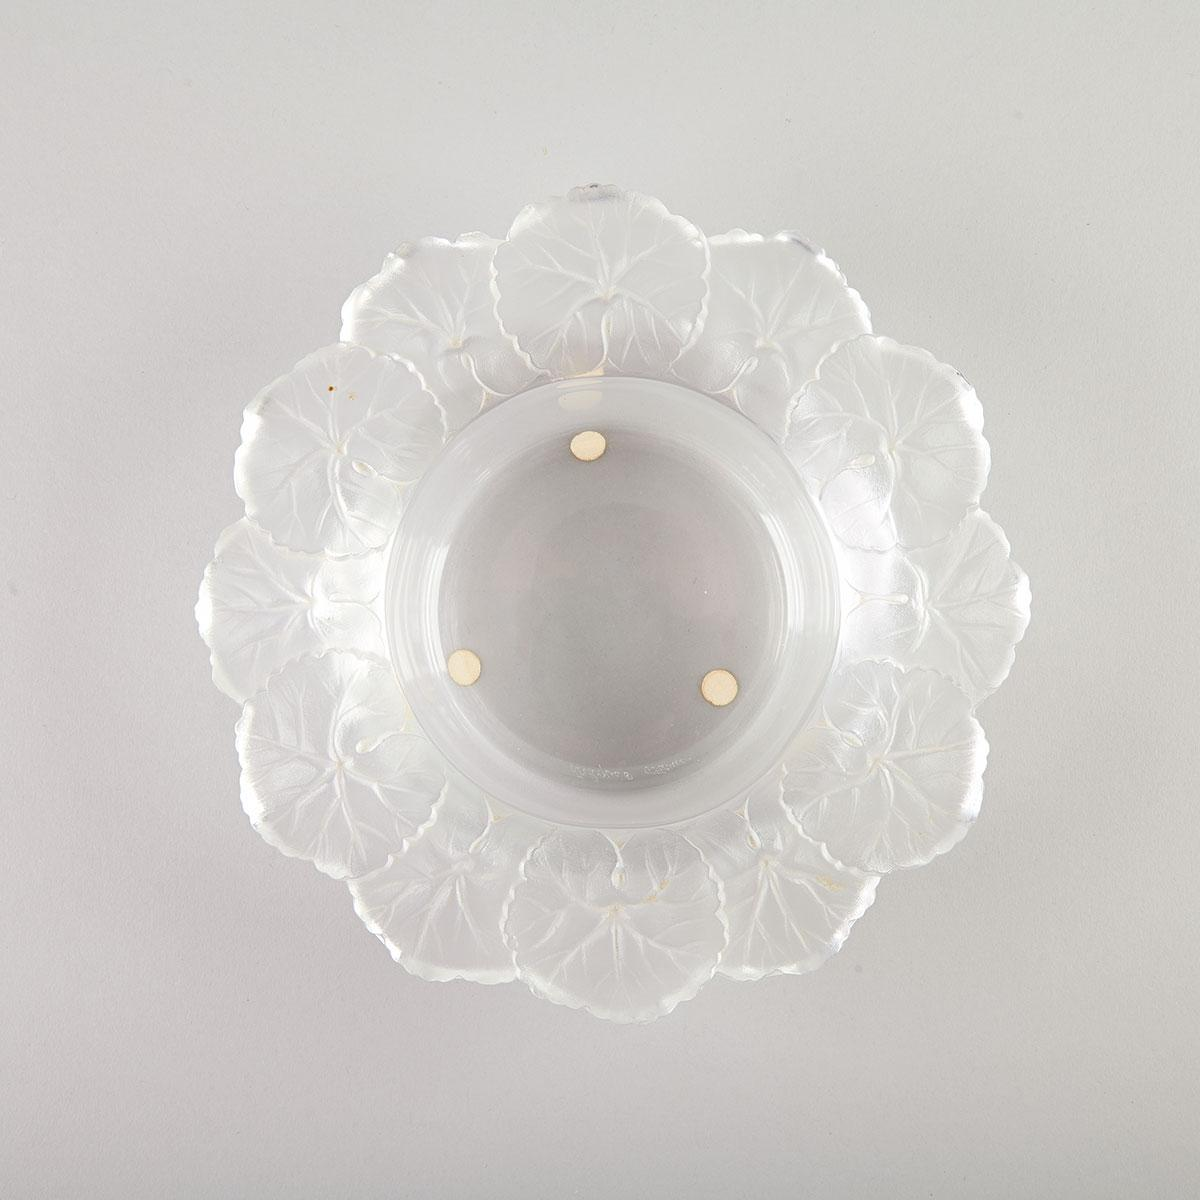 'Honfleur', Lalique Moulded and Partly Frosted Glass Bowl, post-1960